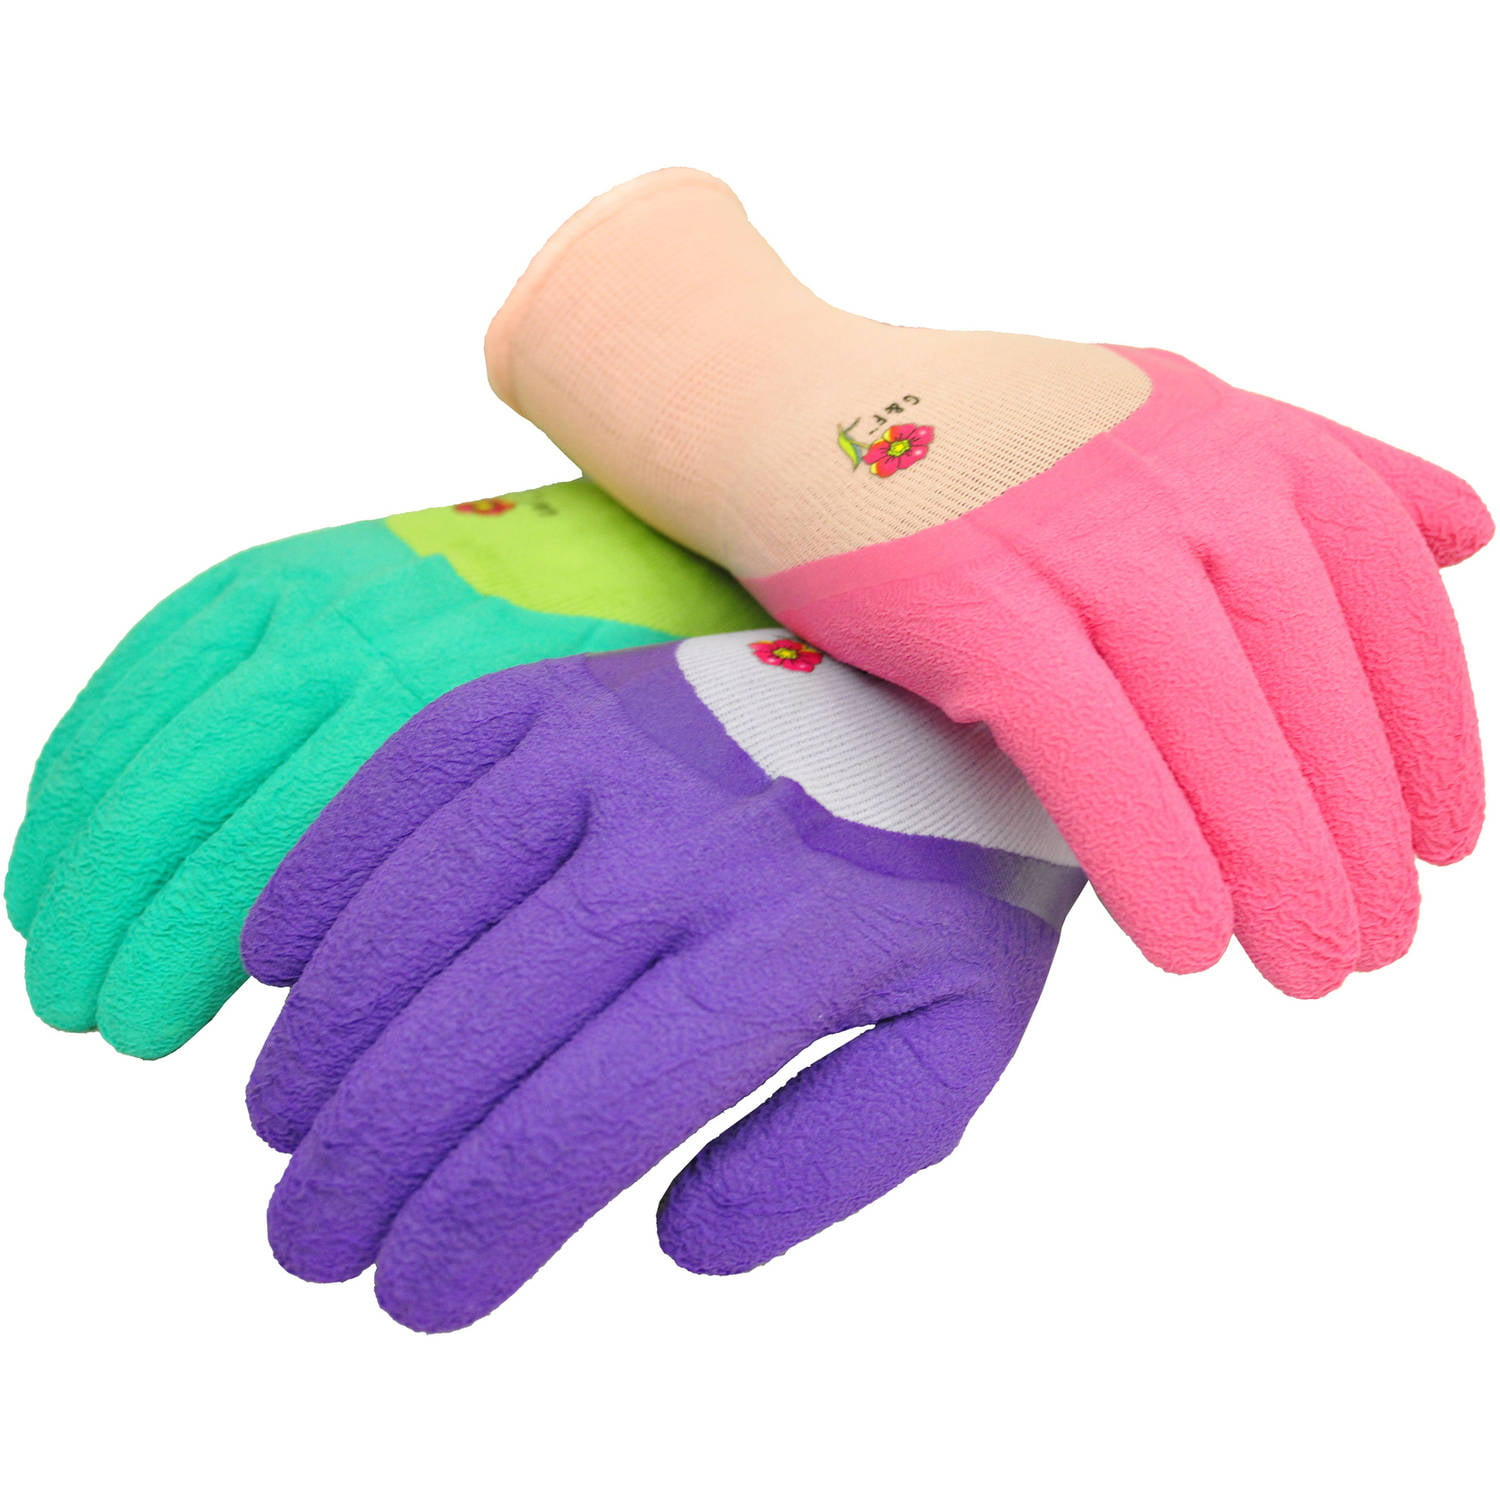 G & F Women Garden Gloves with Micro-foam Nylon Latex Coating and Texture Grip, 3 Pairs by G & F